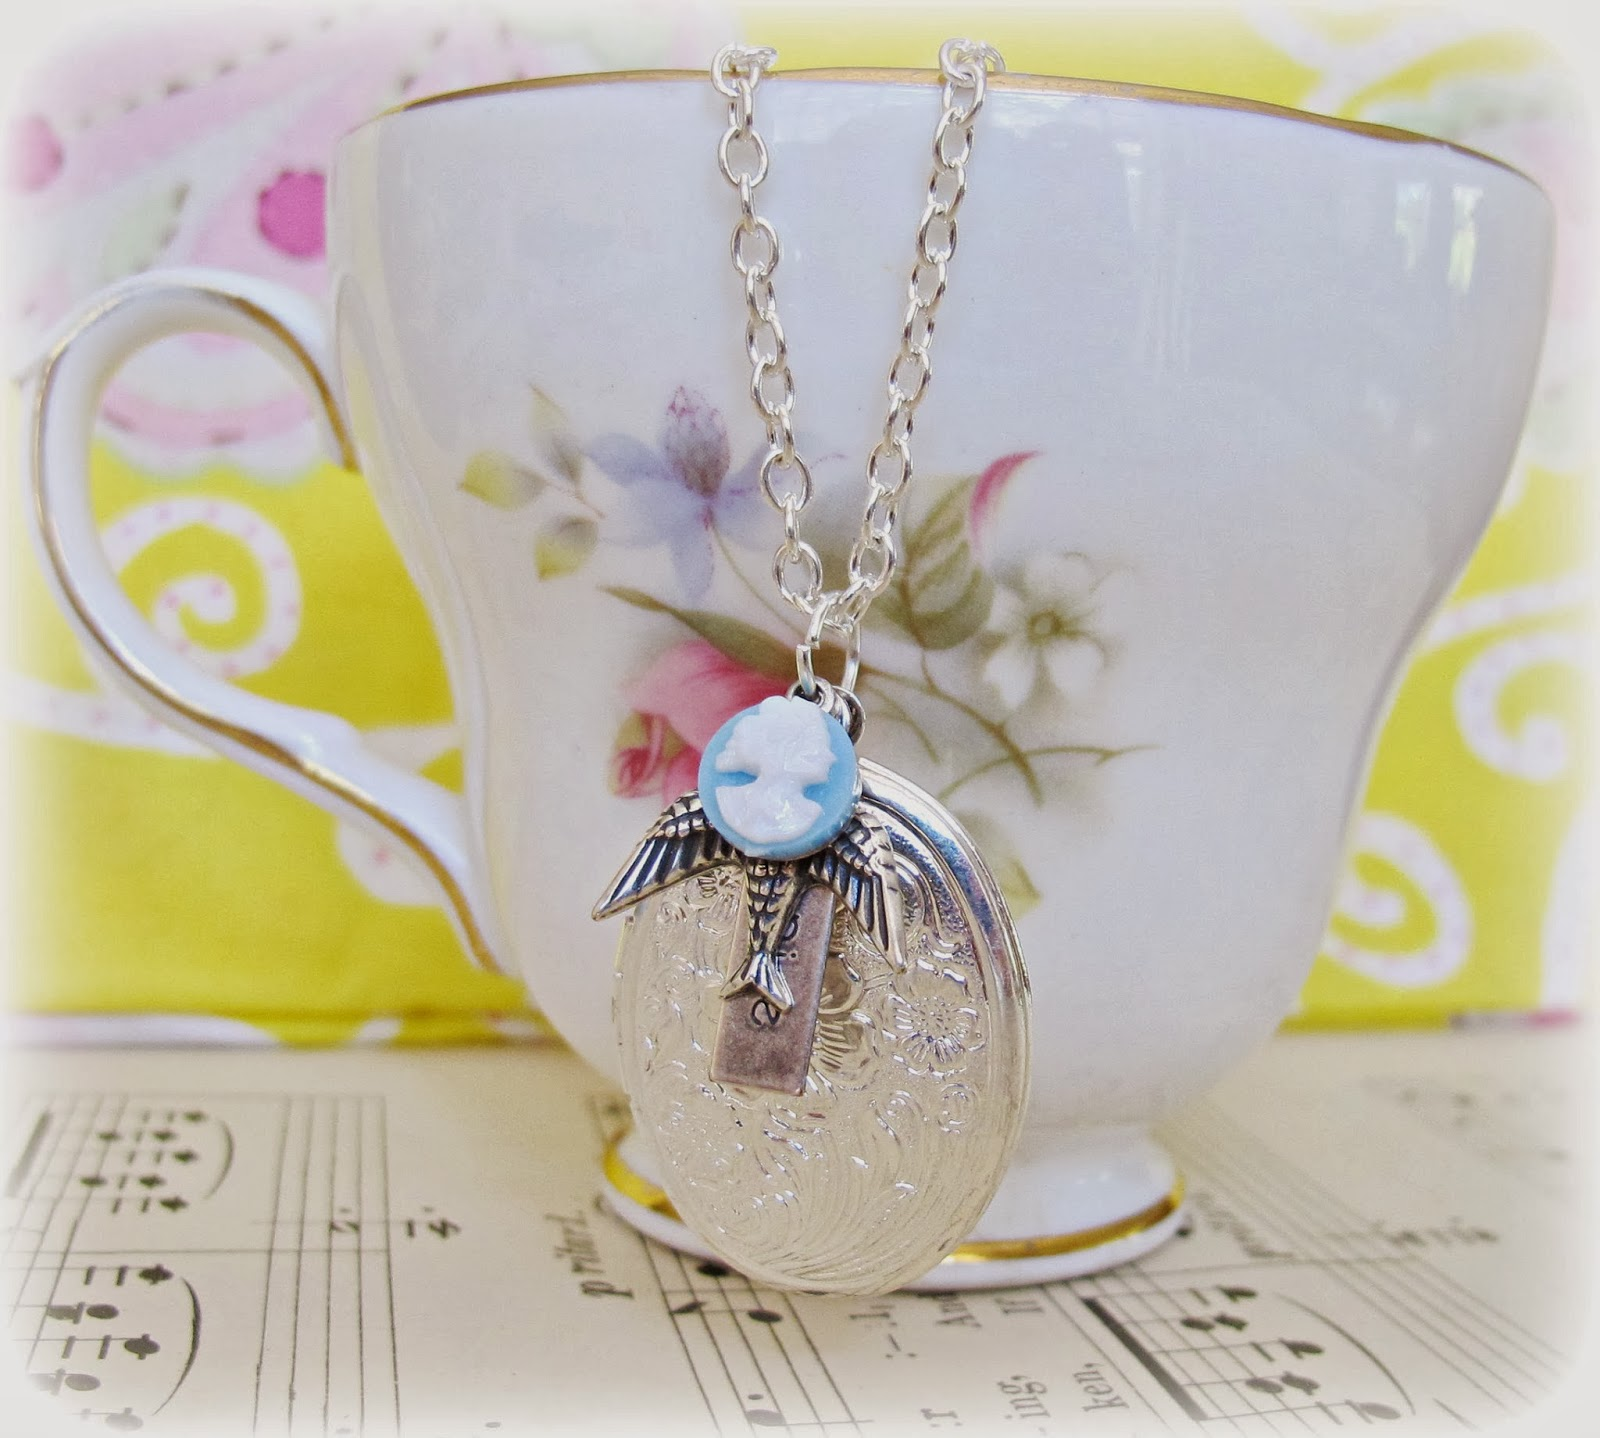 image mr darcy locket necklace two cheeky monkeys jane austen pride and prejudice silver plated swallow bird blue and white cameo inspire quote